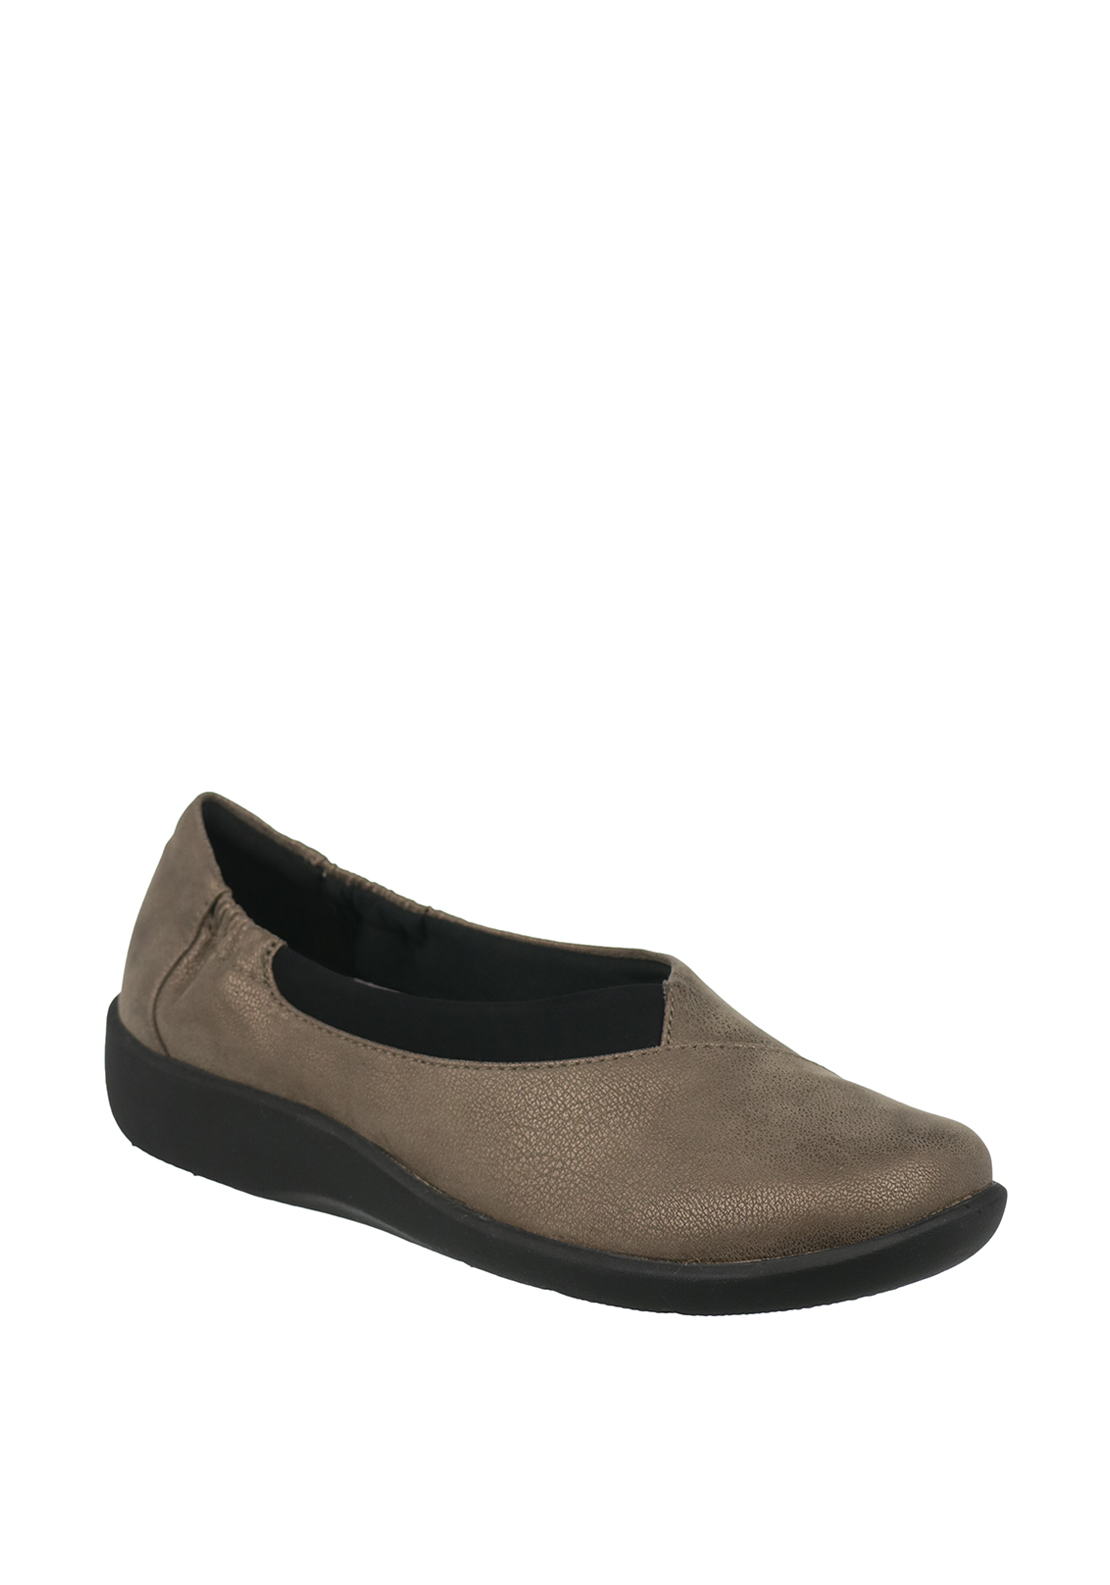 Clarks Womens Sillian Jetay Cloud Steppers Slip on Shoes, Pewter